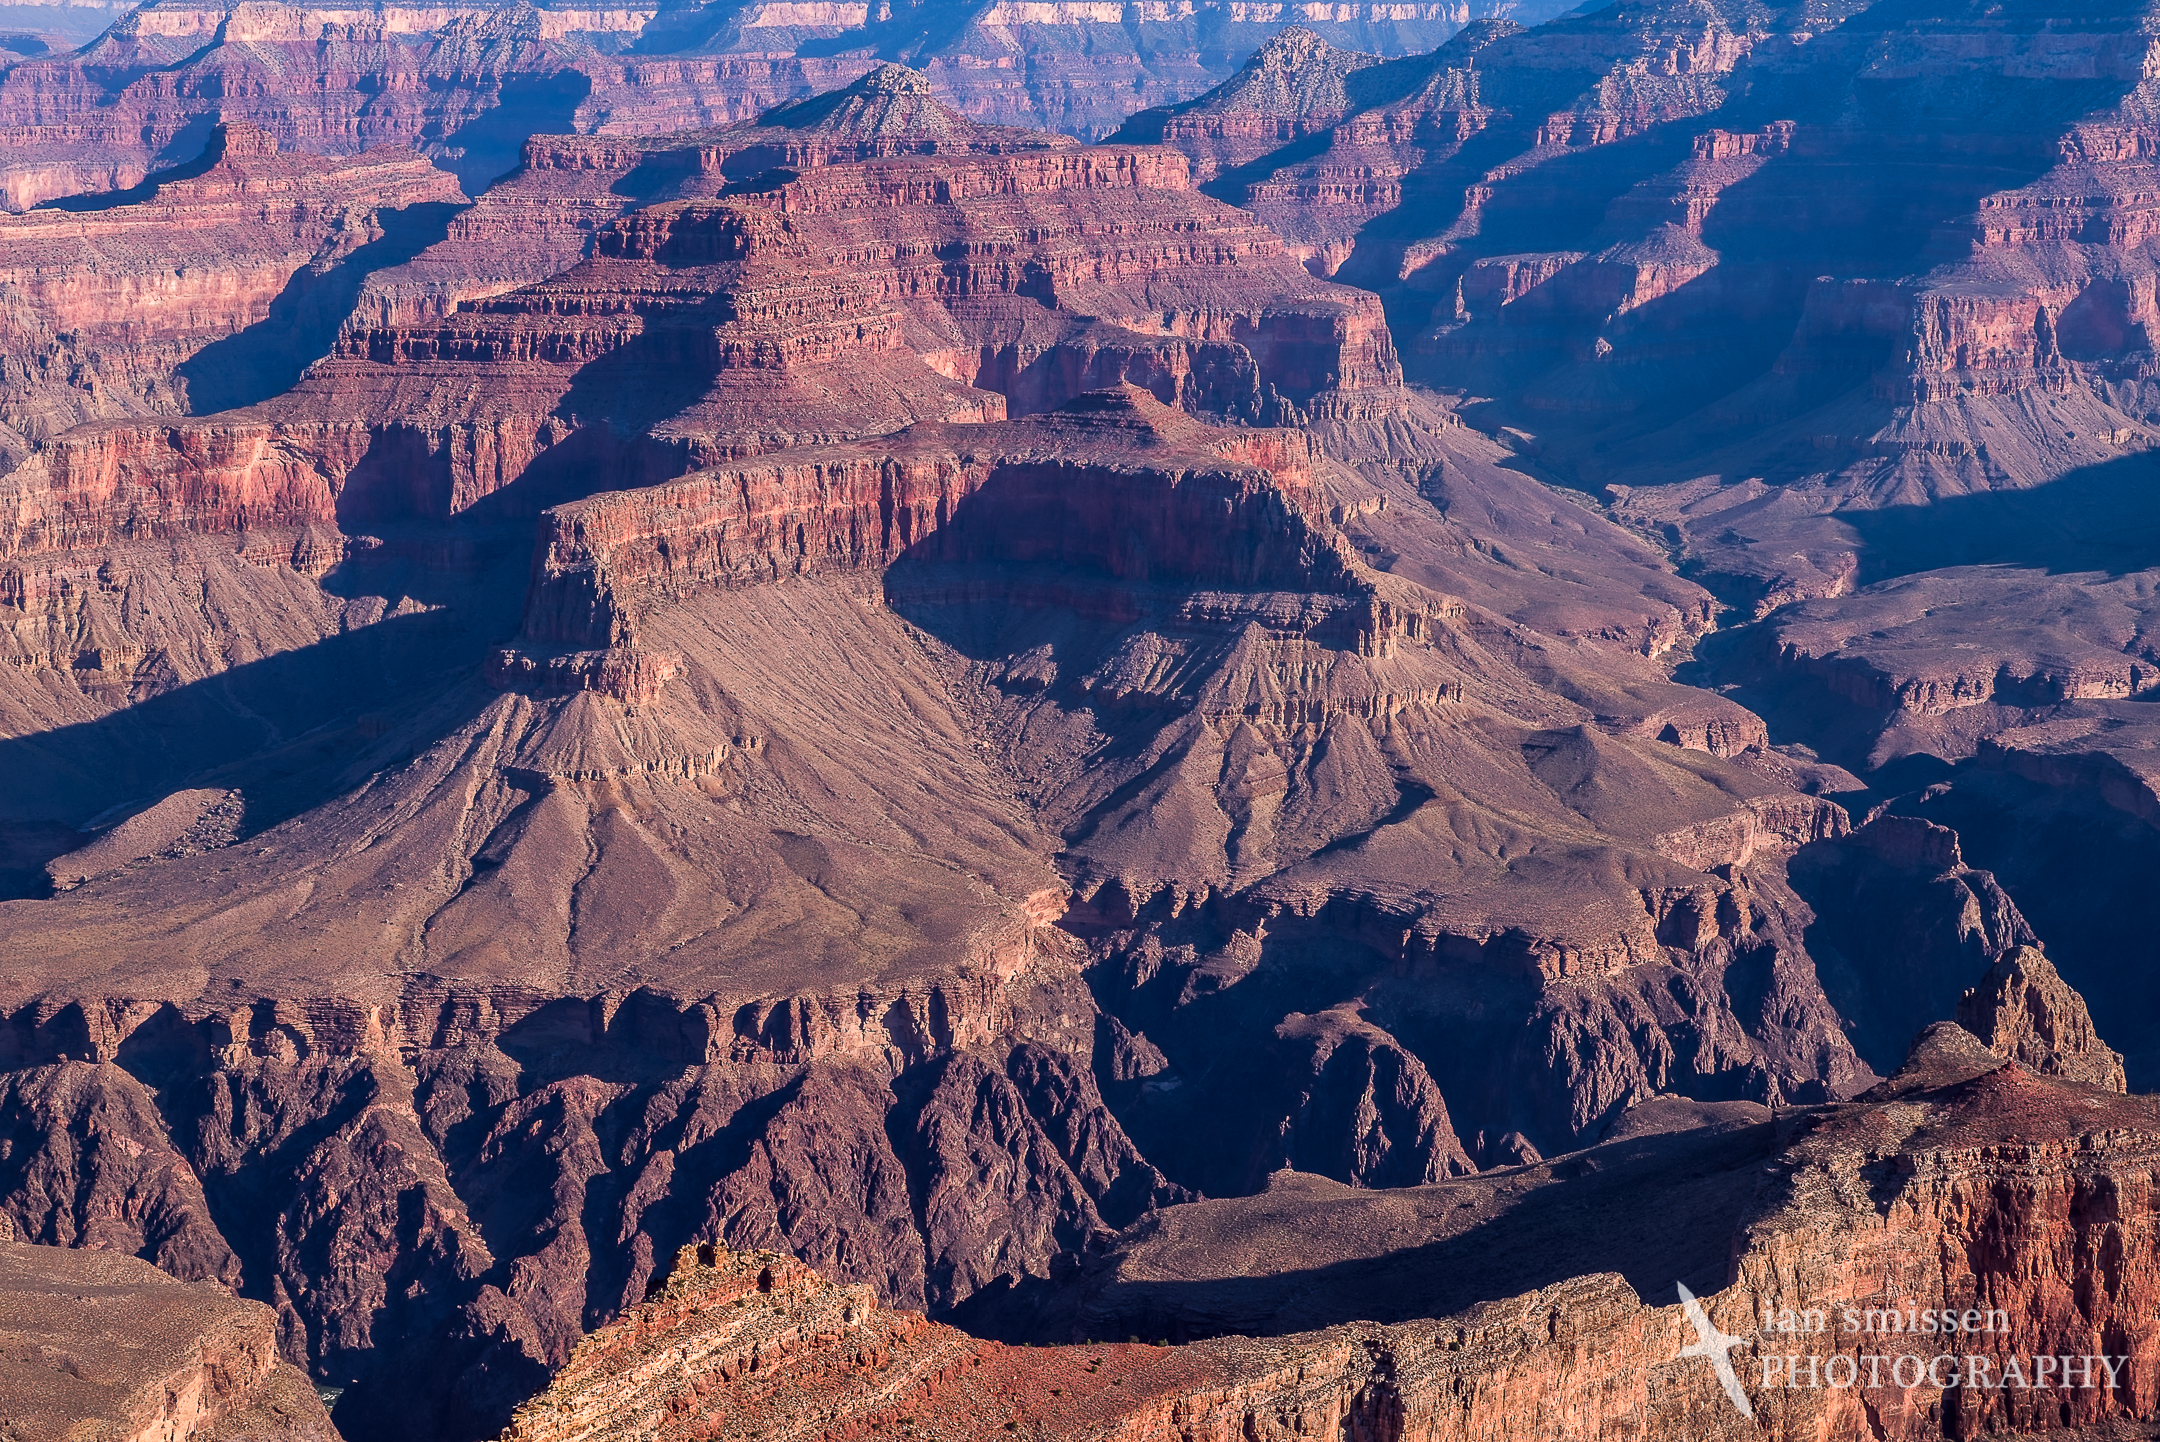 Grand Canyon from Maricopa Point